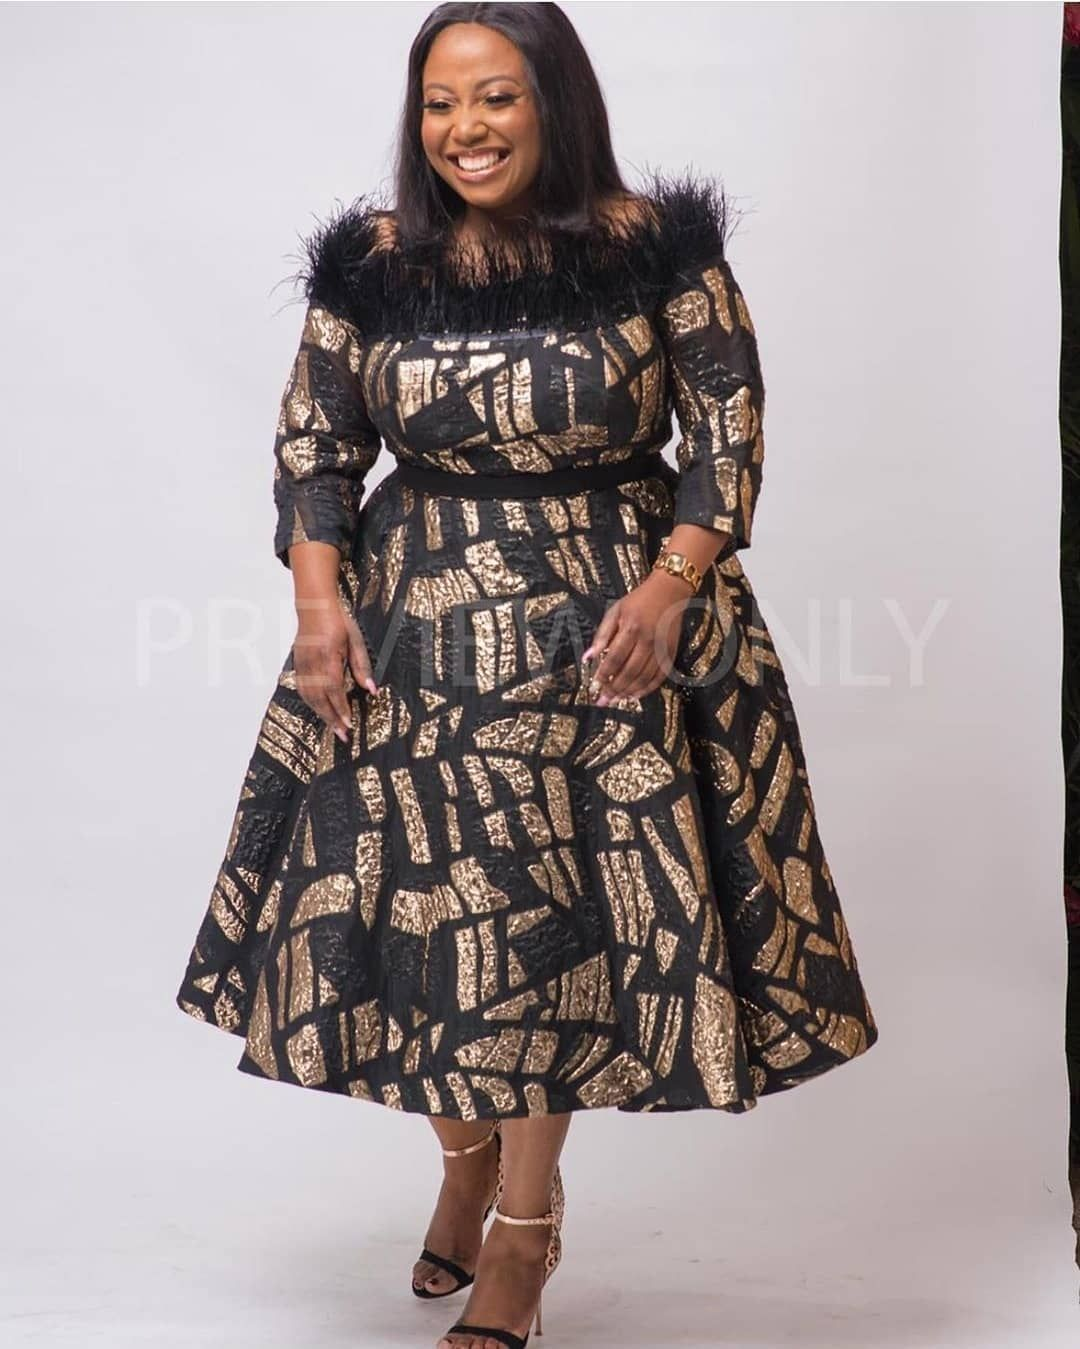 Trending African Dresses Designs 2020: Best Simple Special, Gorgeous & Classy Collections For Women